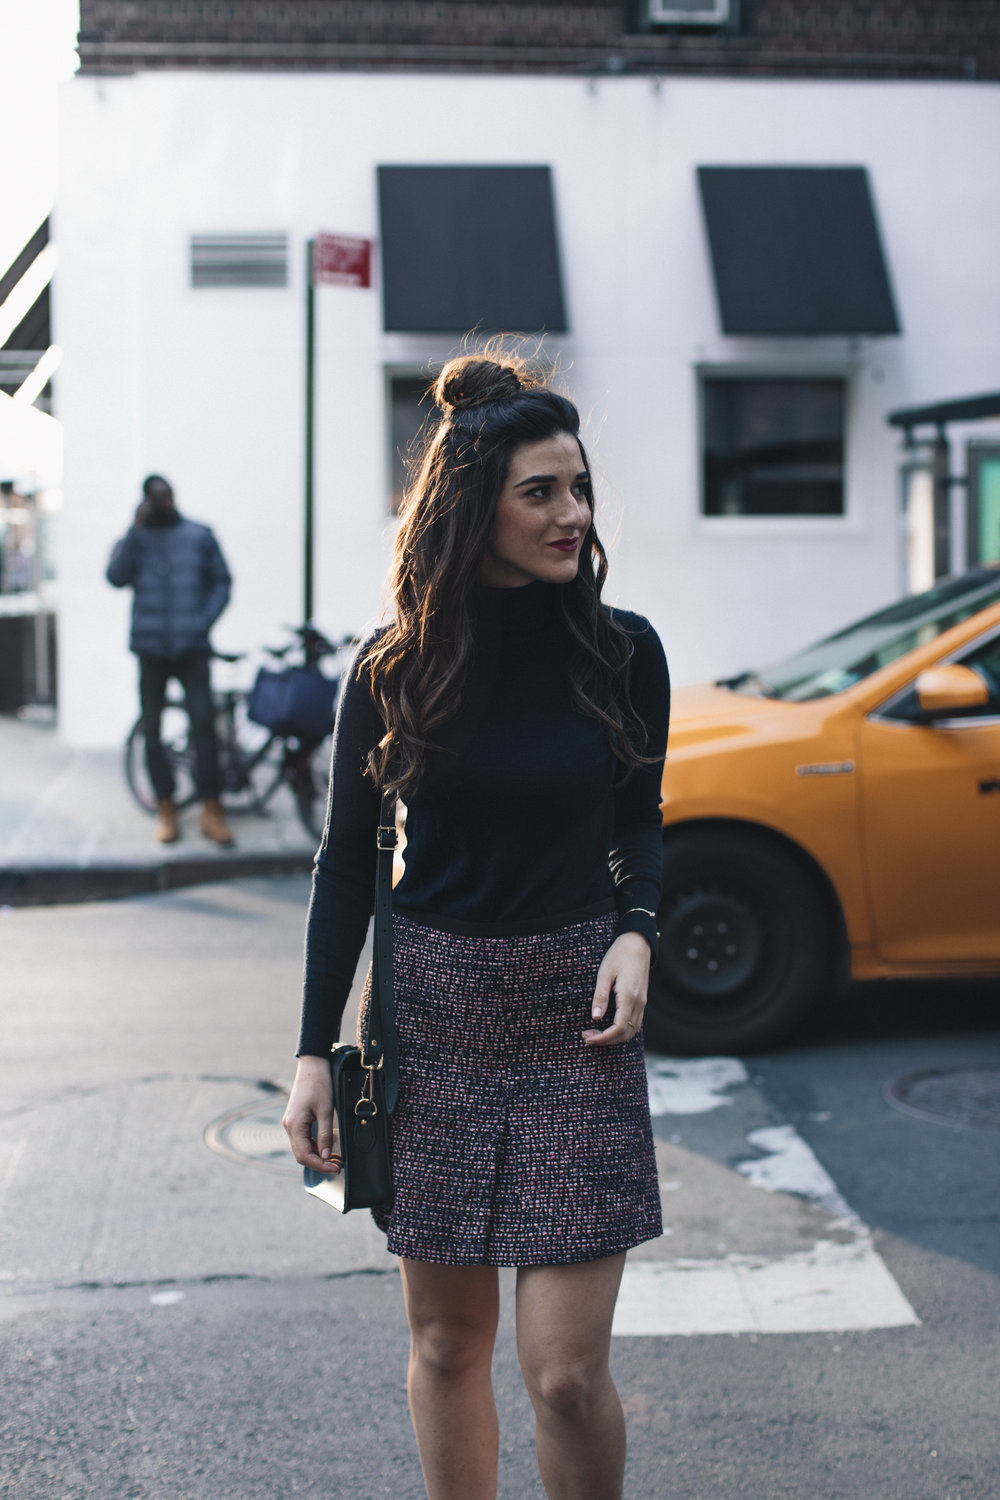 Navy Turtleneck Tweed Skirt My 10 Best Blogging Moments Louboutins & Love Fashion Blog Esther Santer NYC Street Style Blogger Outfit OOTD Trendy Cambridge Satchel Bag Topknot Hair Bun Girl Women Beauty Winter Shoes Tan Fringe Ivanka Trump Booties Shop.jpg